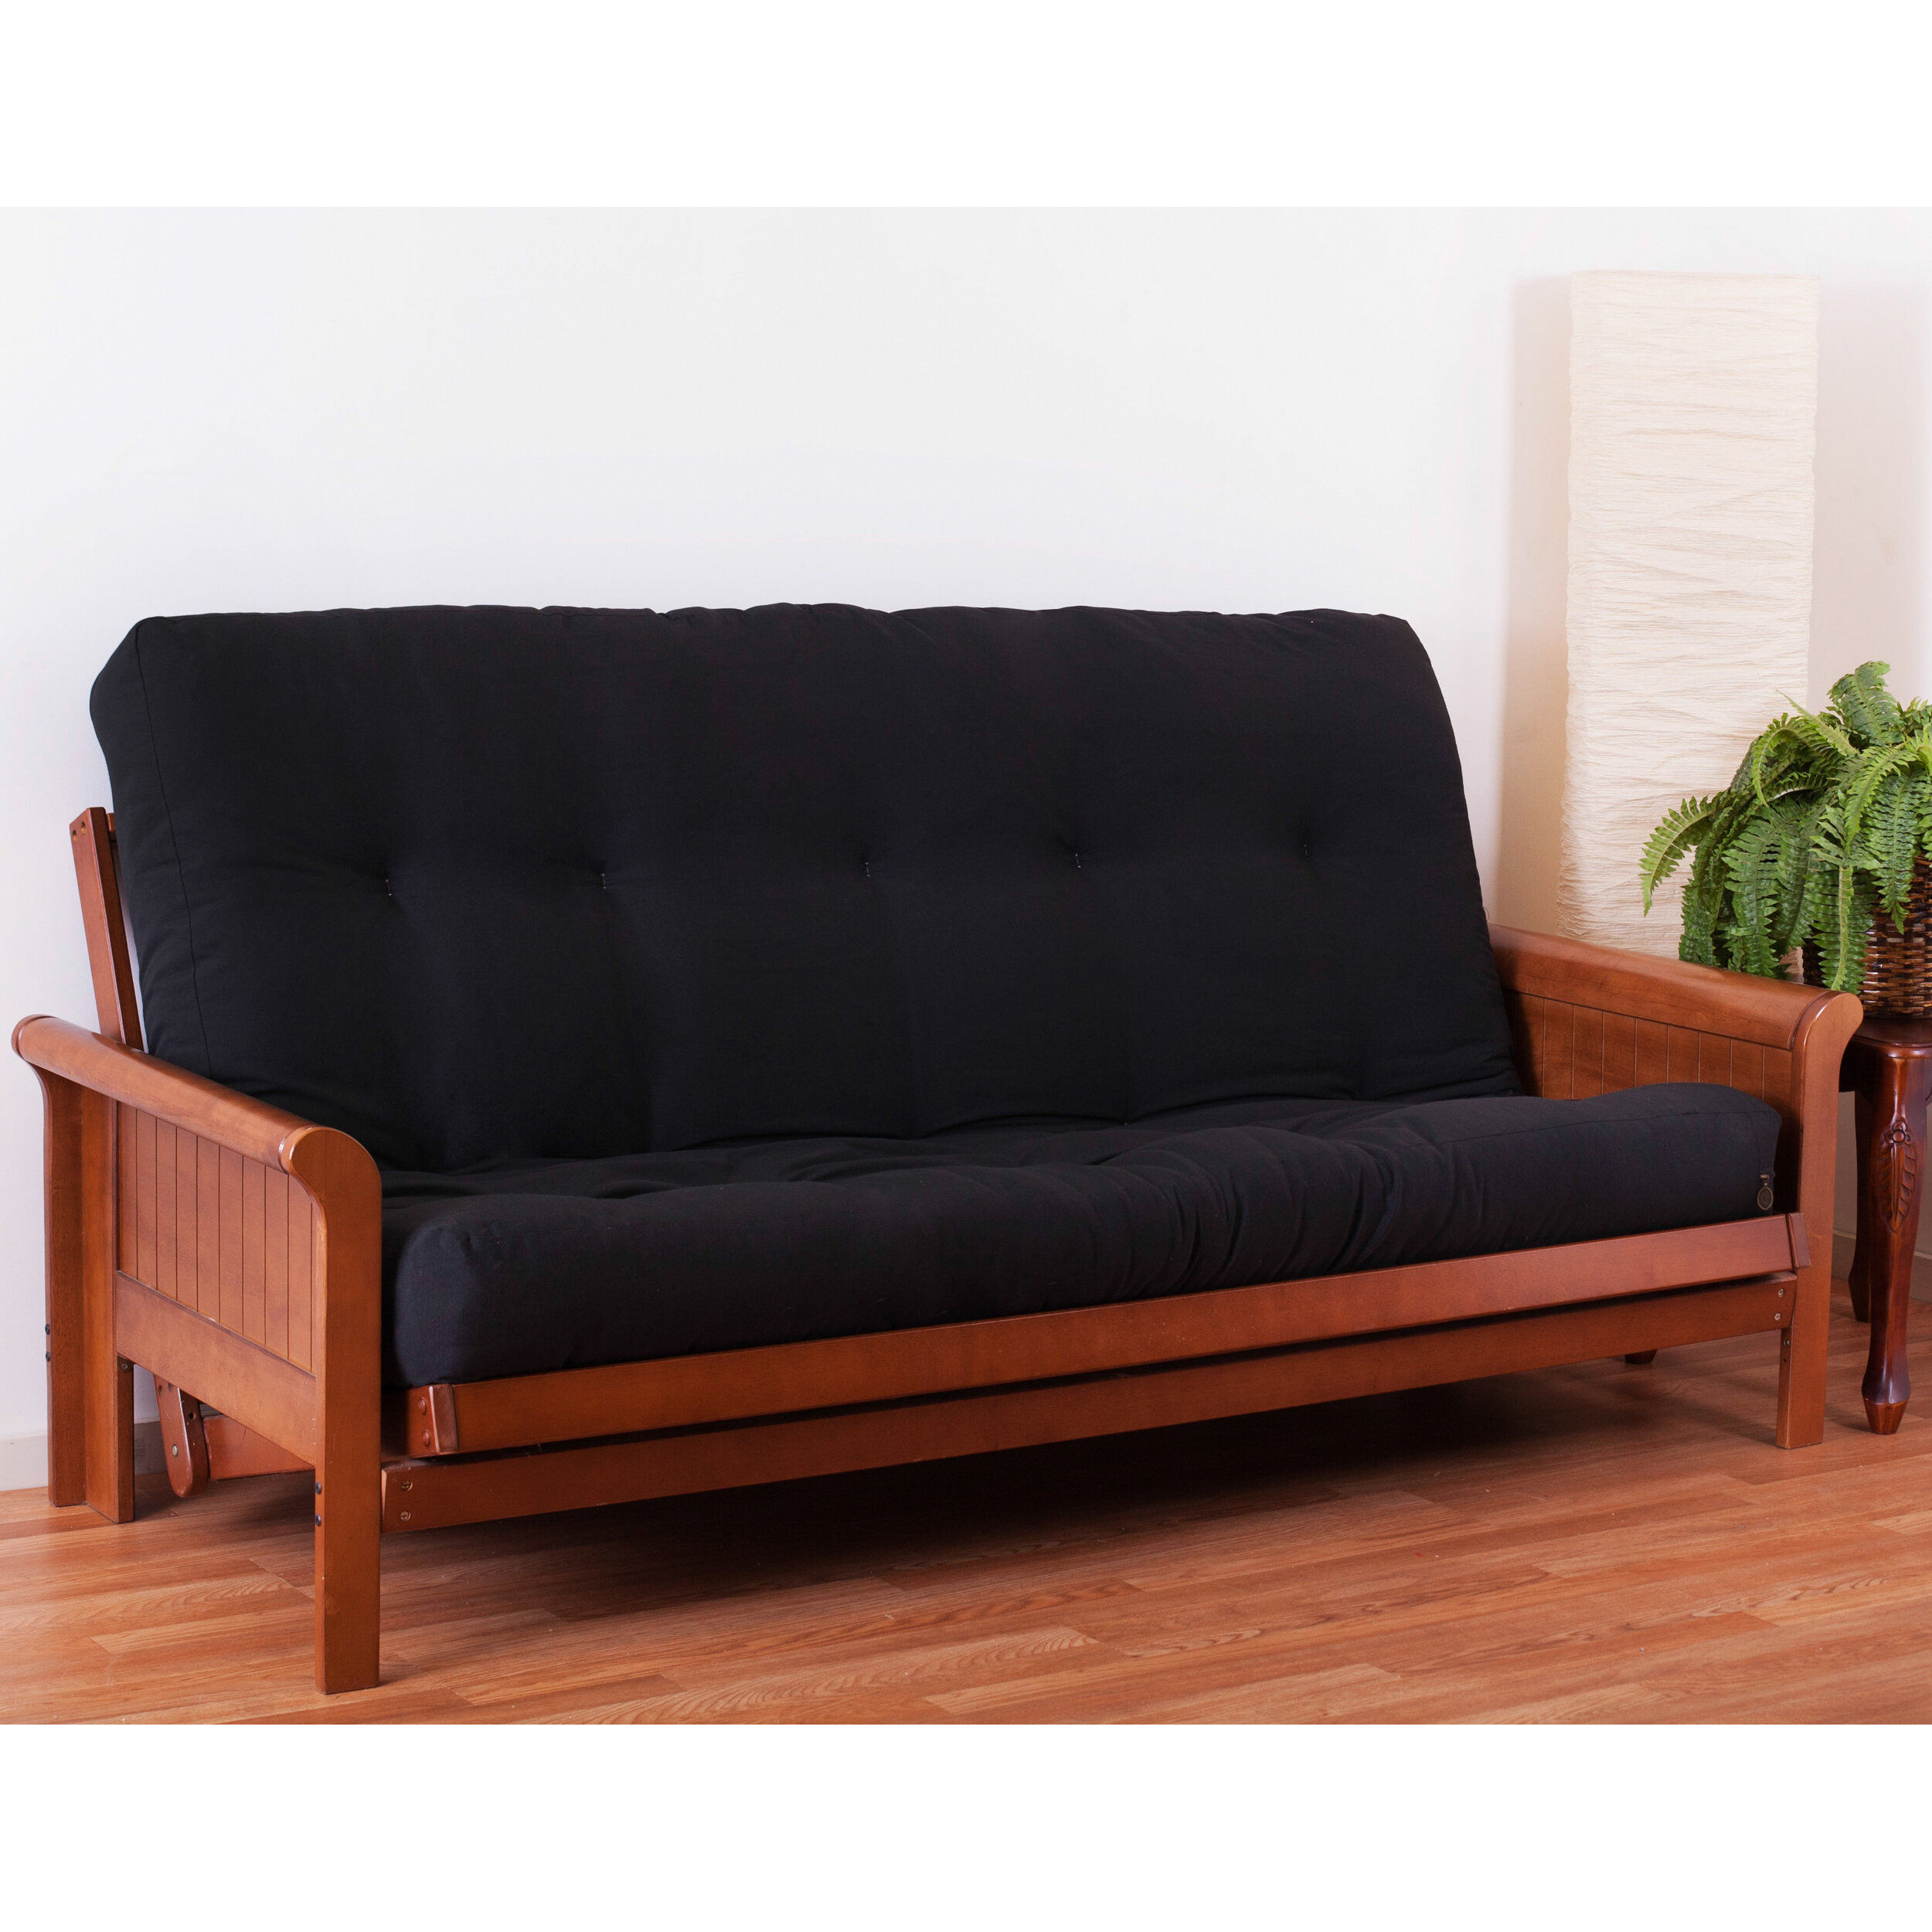 Full Size Futon Mattress